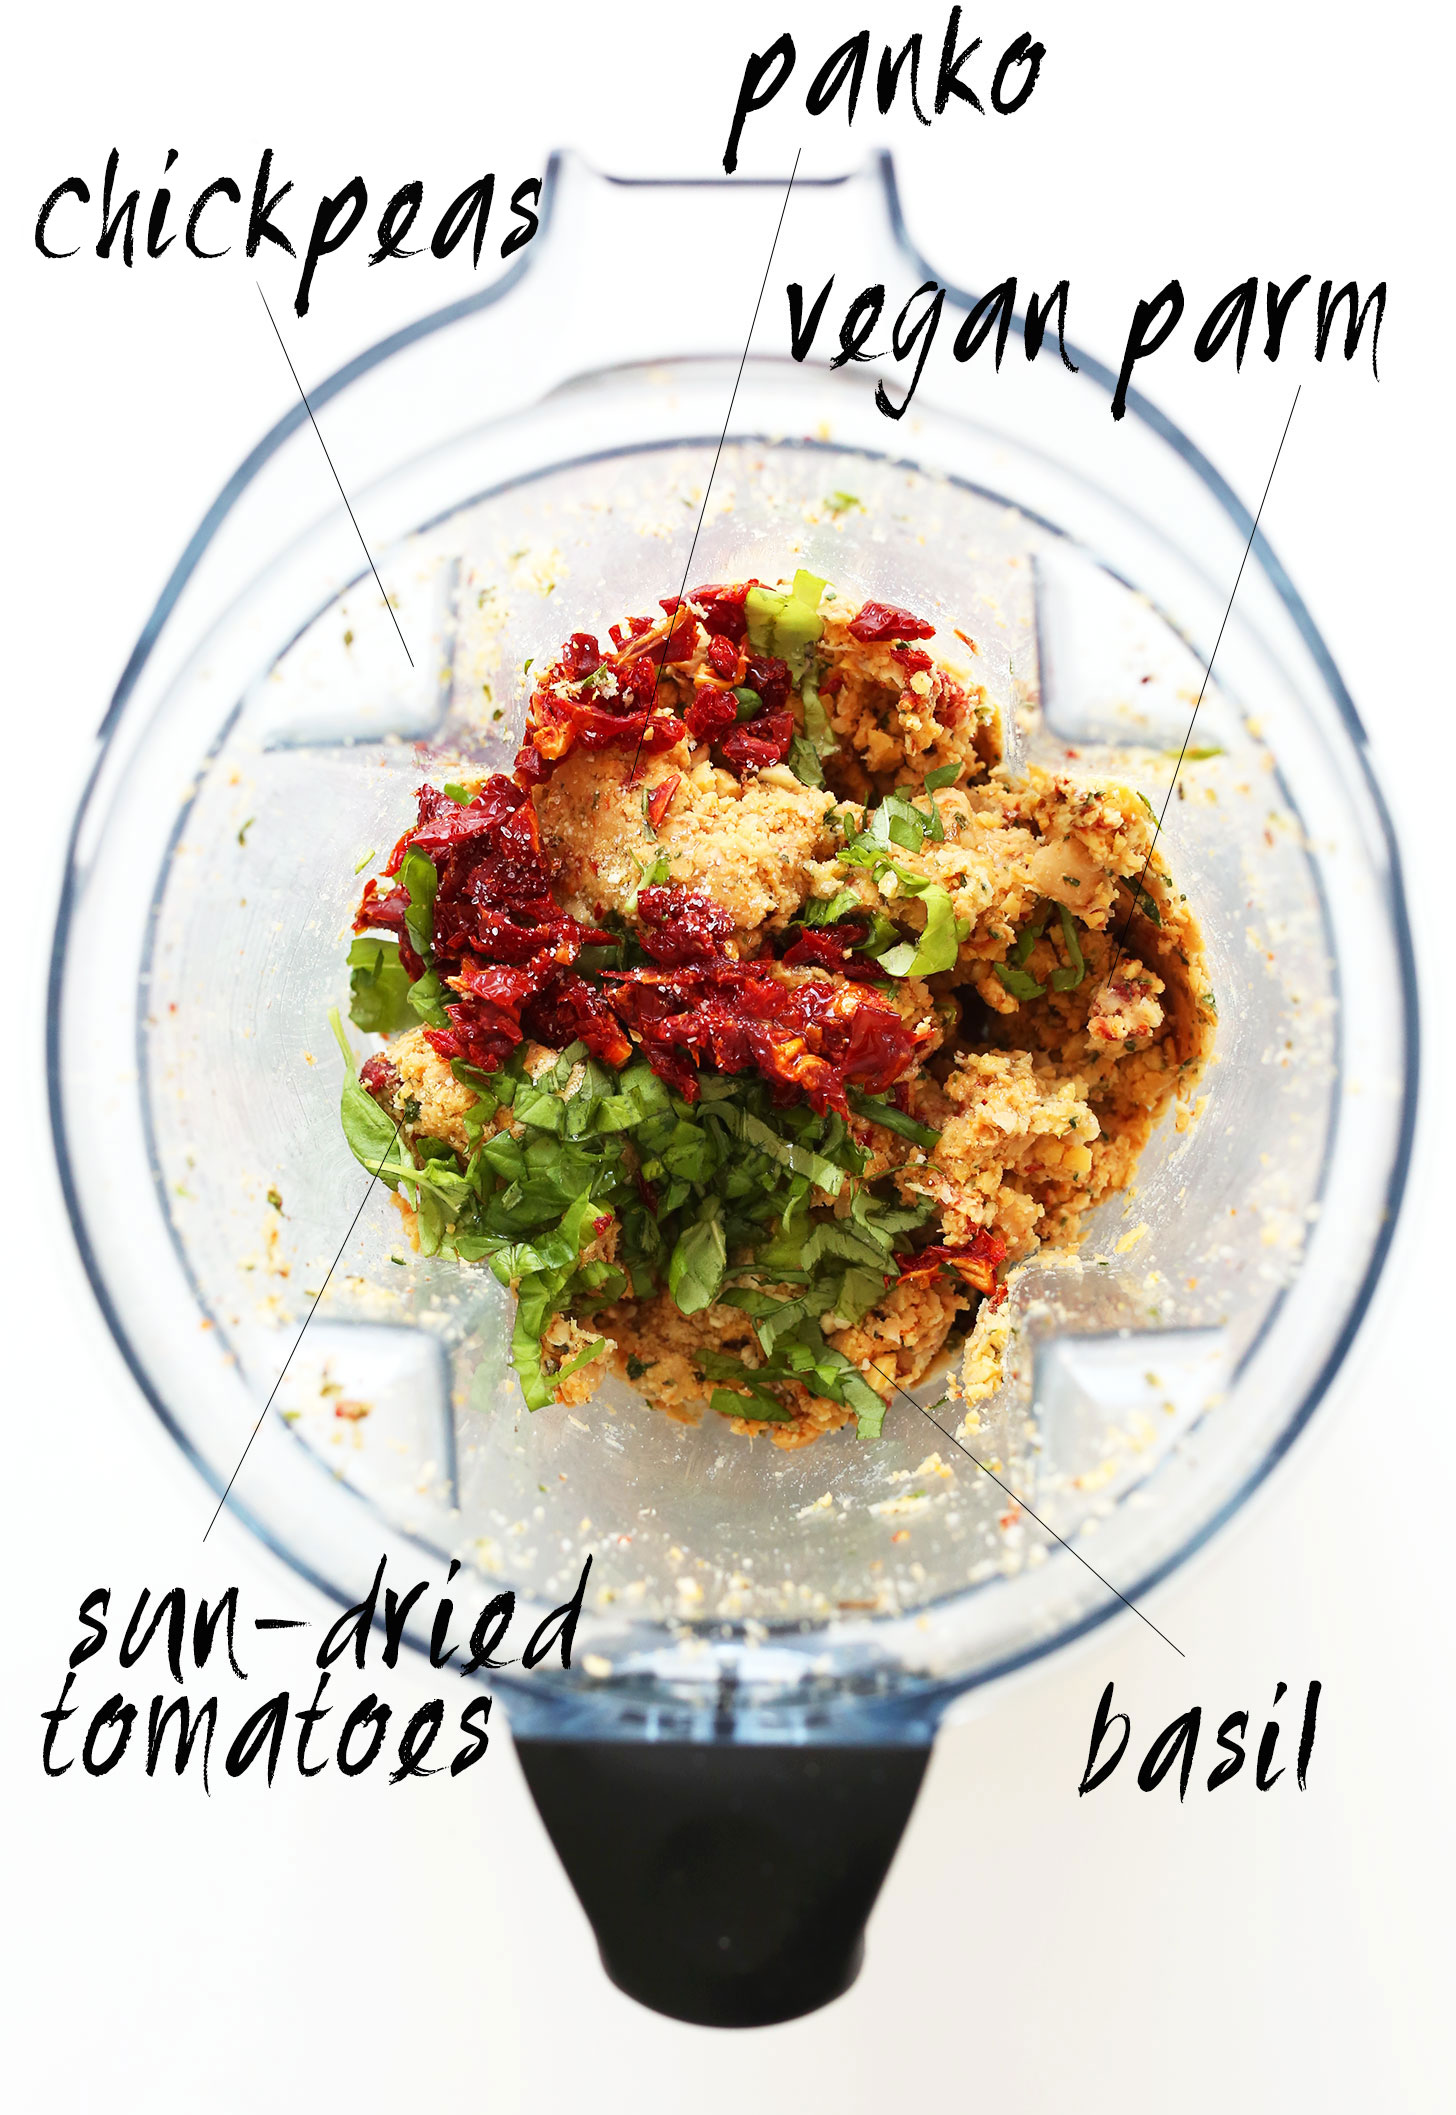 Blender with panko, chickpeas, vegan parmesan, basil, and sun-dried tomatoes for making vegan meatballs